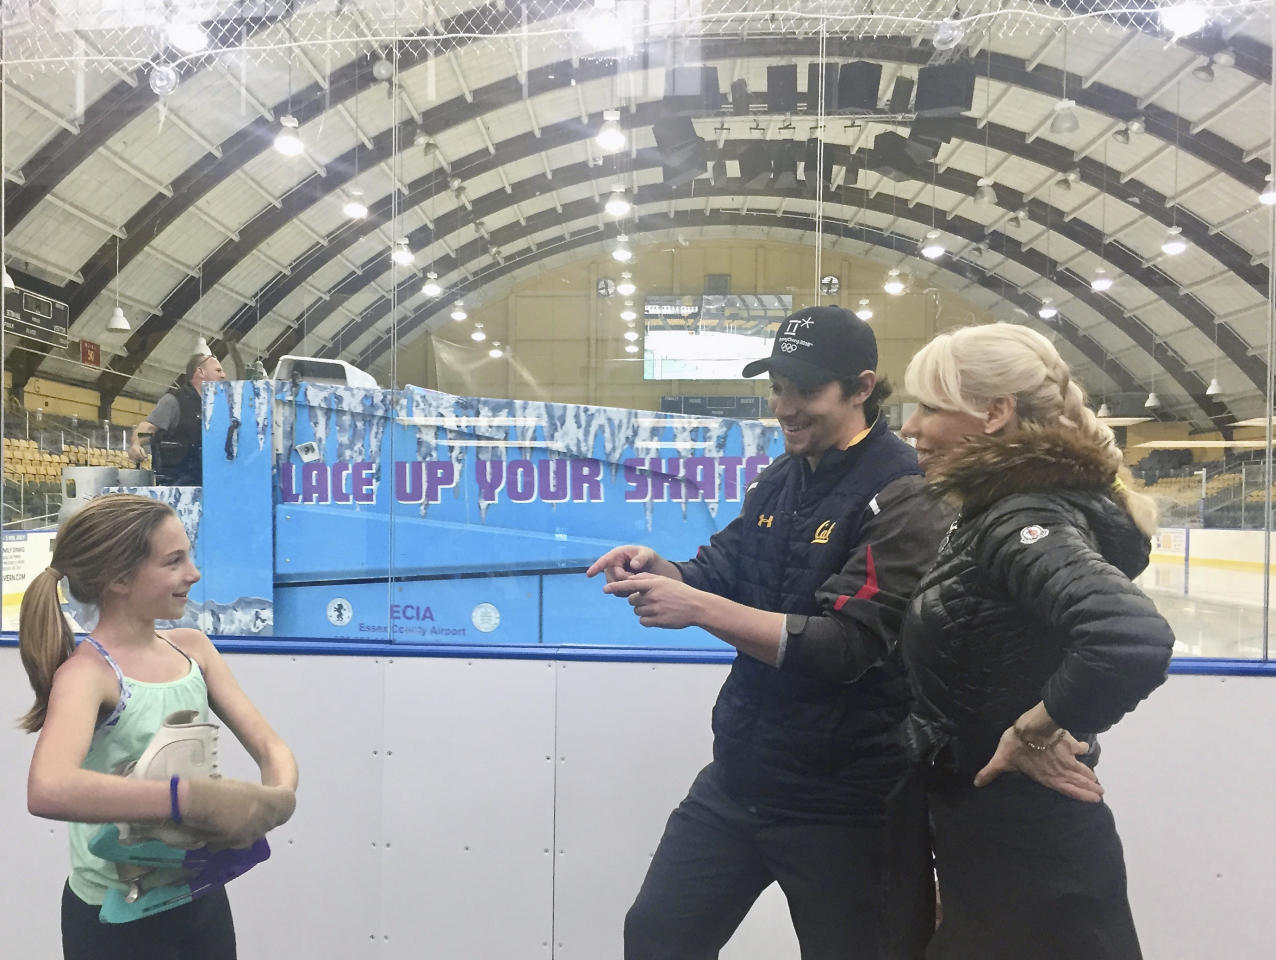 """In this Jan. 30, 2018, photo provided by Championship Figure Skating Camp, figure skater Gabby Rodyk, left, chats with coaches Matel Silecky and Rosie Tovi before taking the ice at the Essex County Codey Arena in West Orange, N.J. Tovi has a better idea. The figure skating coach believes _ and she has many supporters throughout the ice world _ an emphasis on """"happy and healthy"""" should take precedence over turning the sport into gymnastics in a rink. The longtime coach and choreographer calls it a holistic approach. """"Holistic is a perfect word, because it is the whole,"""" says Tovi, who will be launching her Championship Figure Skating Camp at the Essex County Codey Arena in West Orange on June 25. (Martin Rodyk/Championship Figure Skating Camp via AP)"""